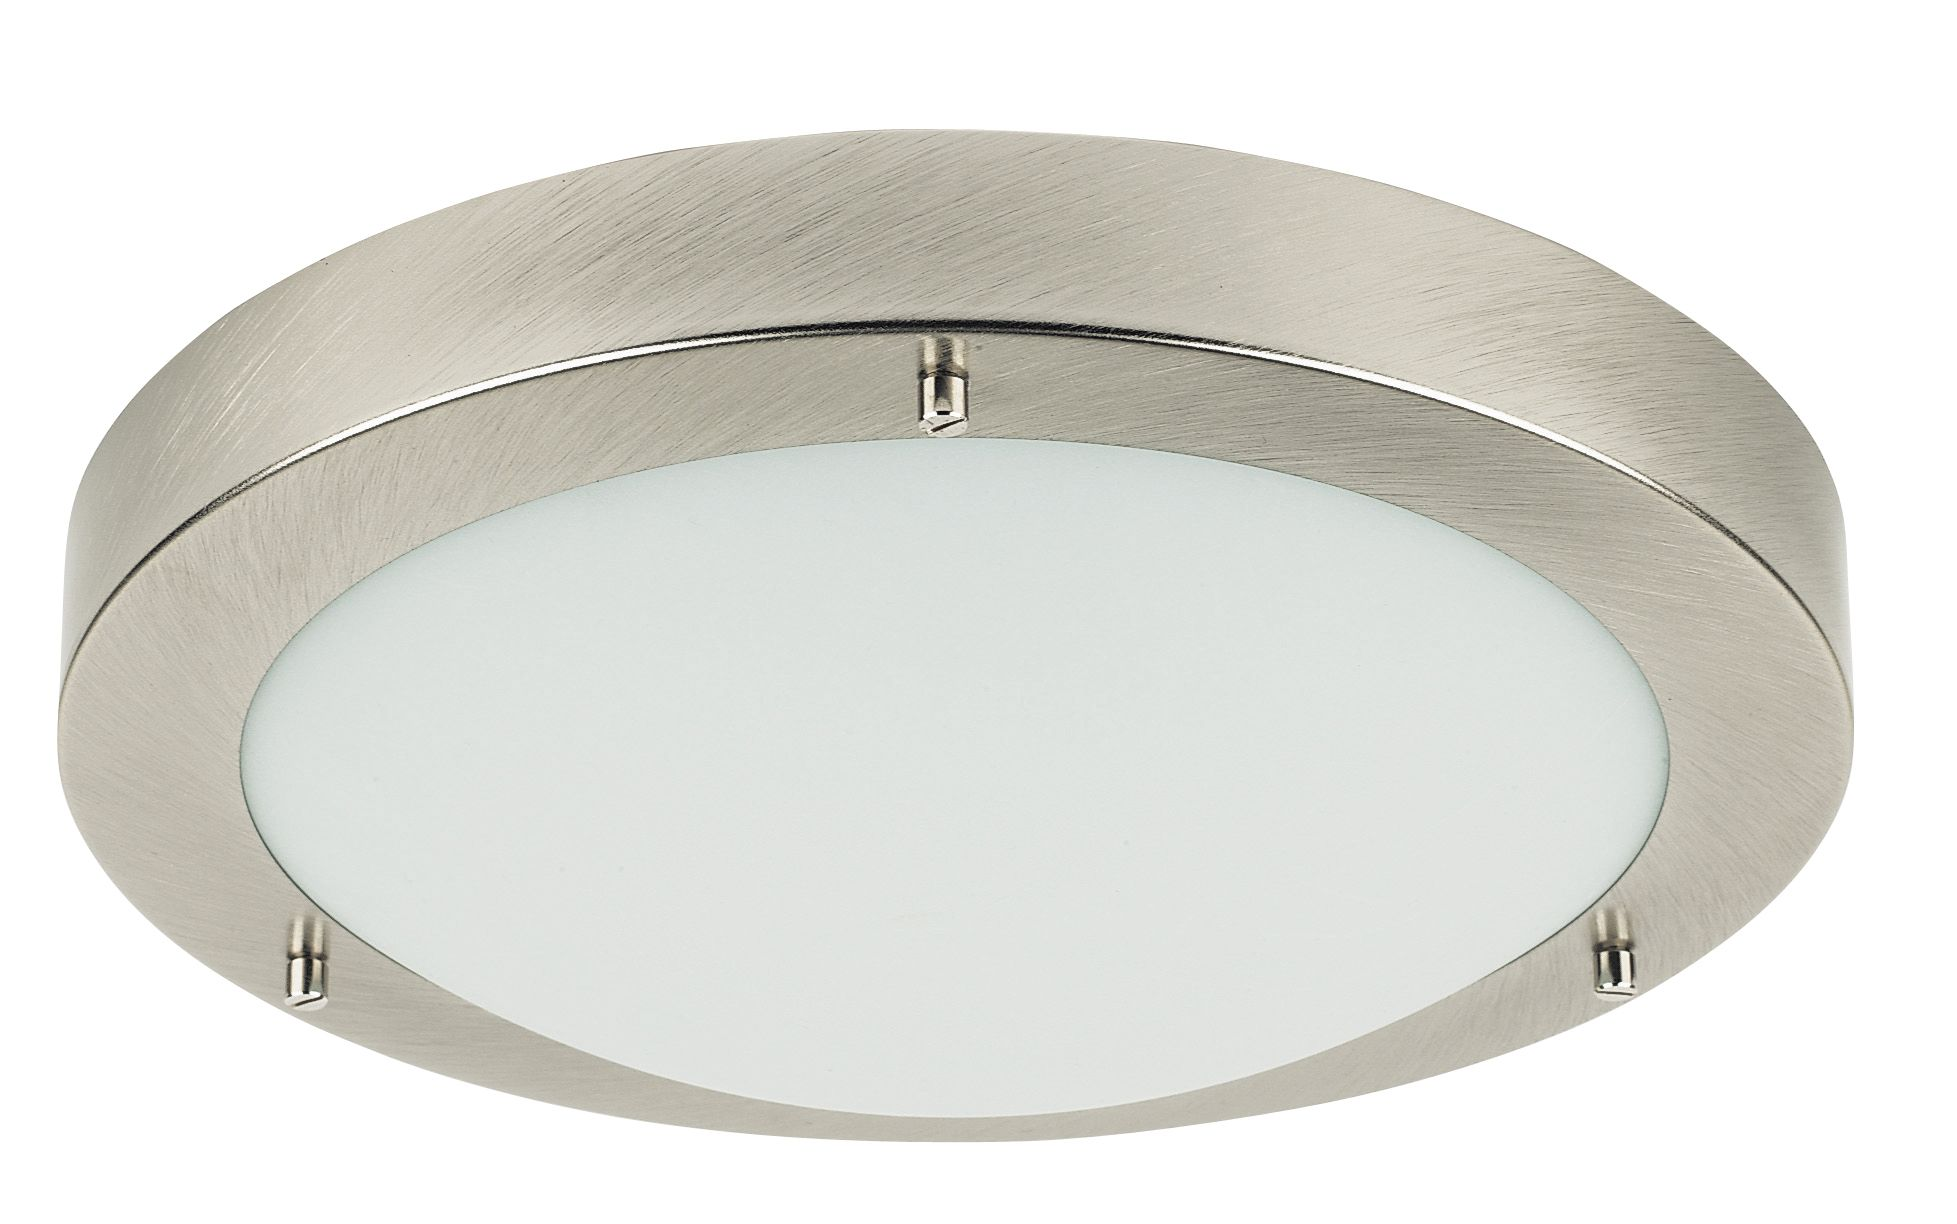 contemporary lighting ceiling rated retro light products penyard cut glass bathroom